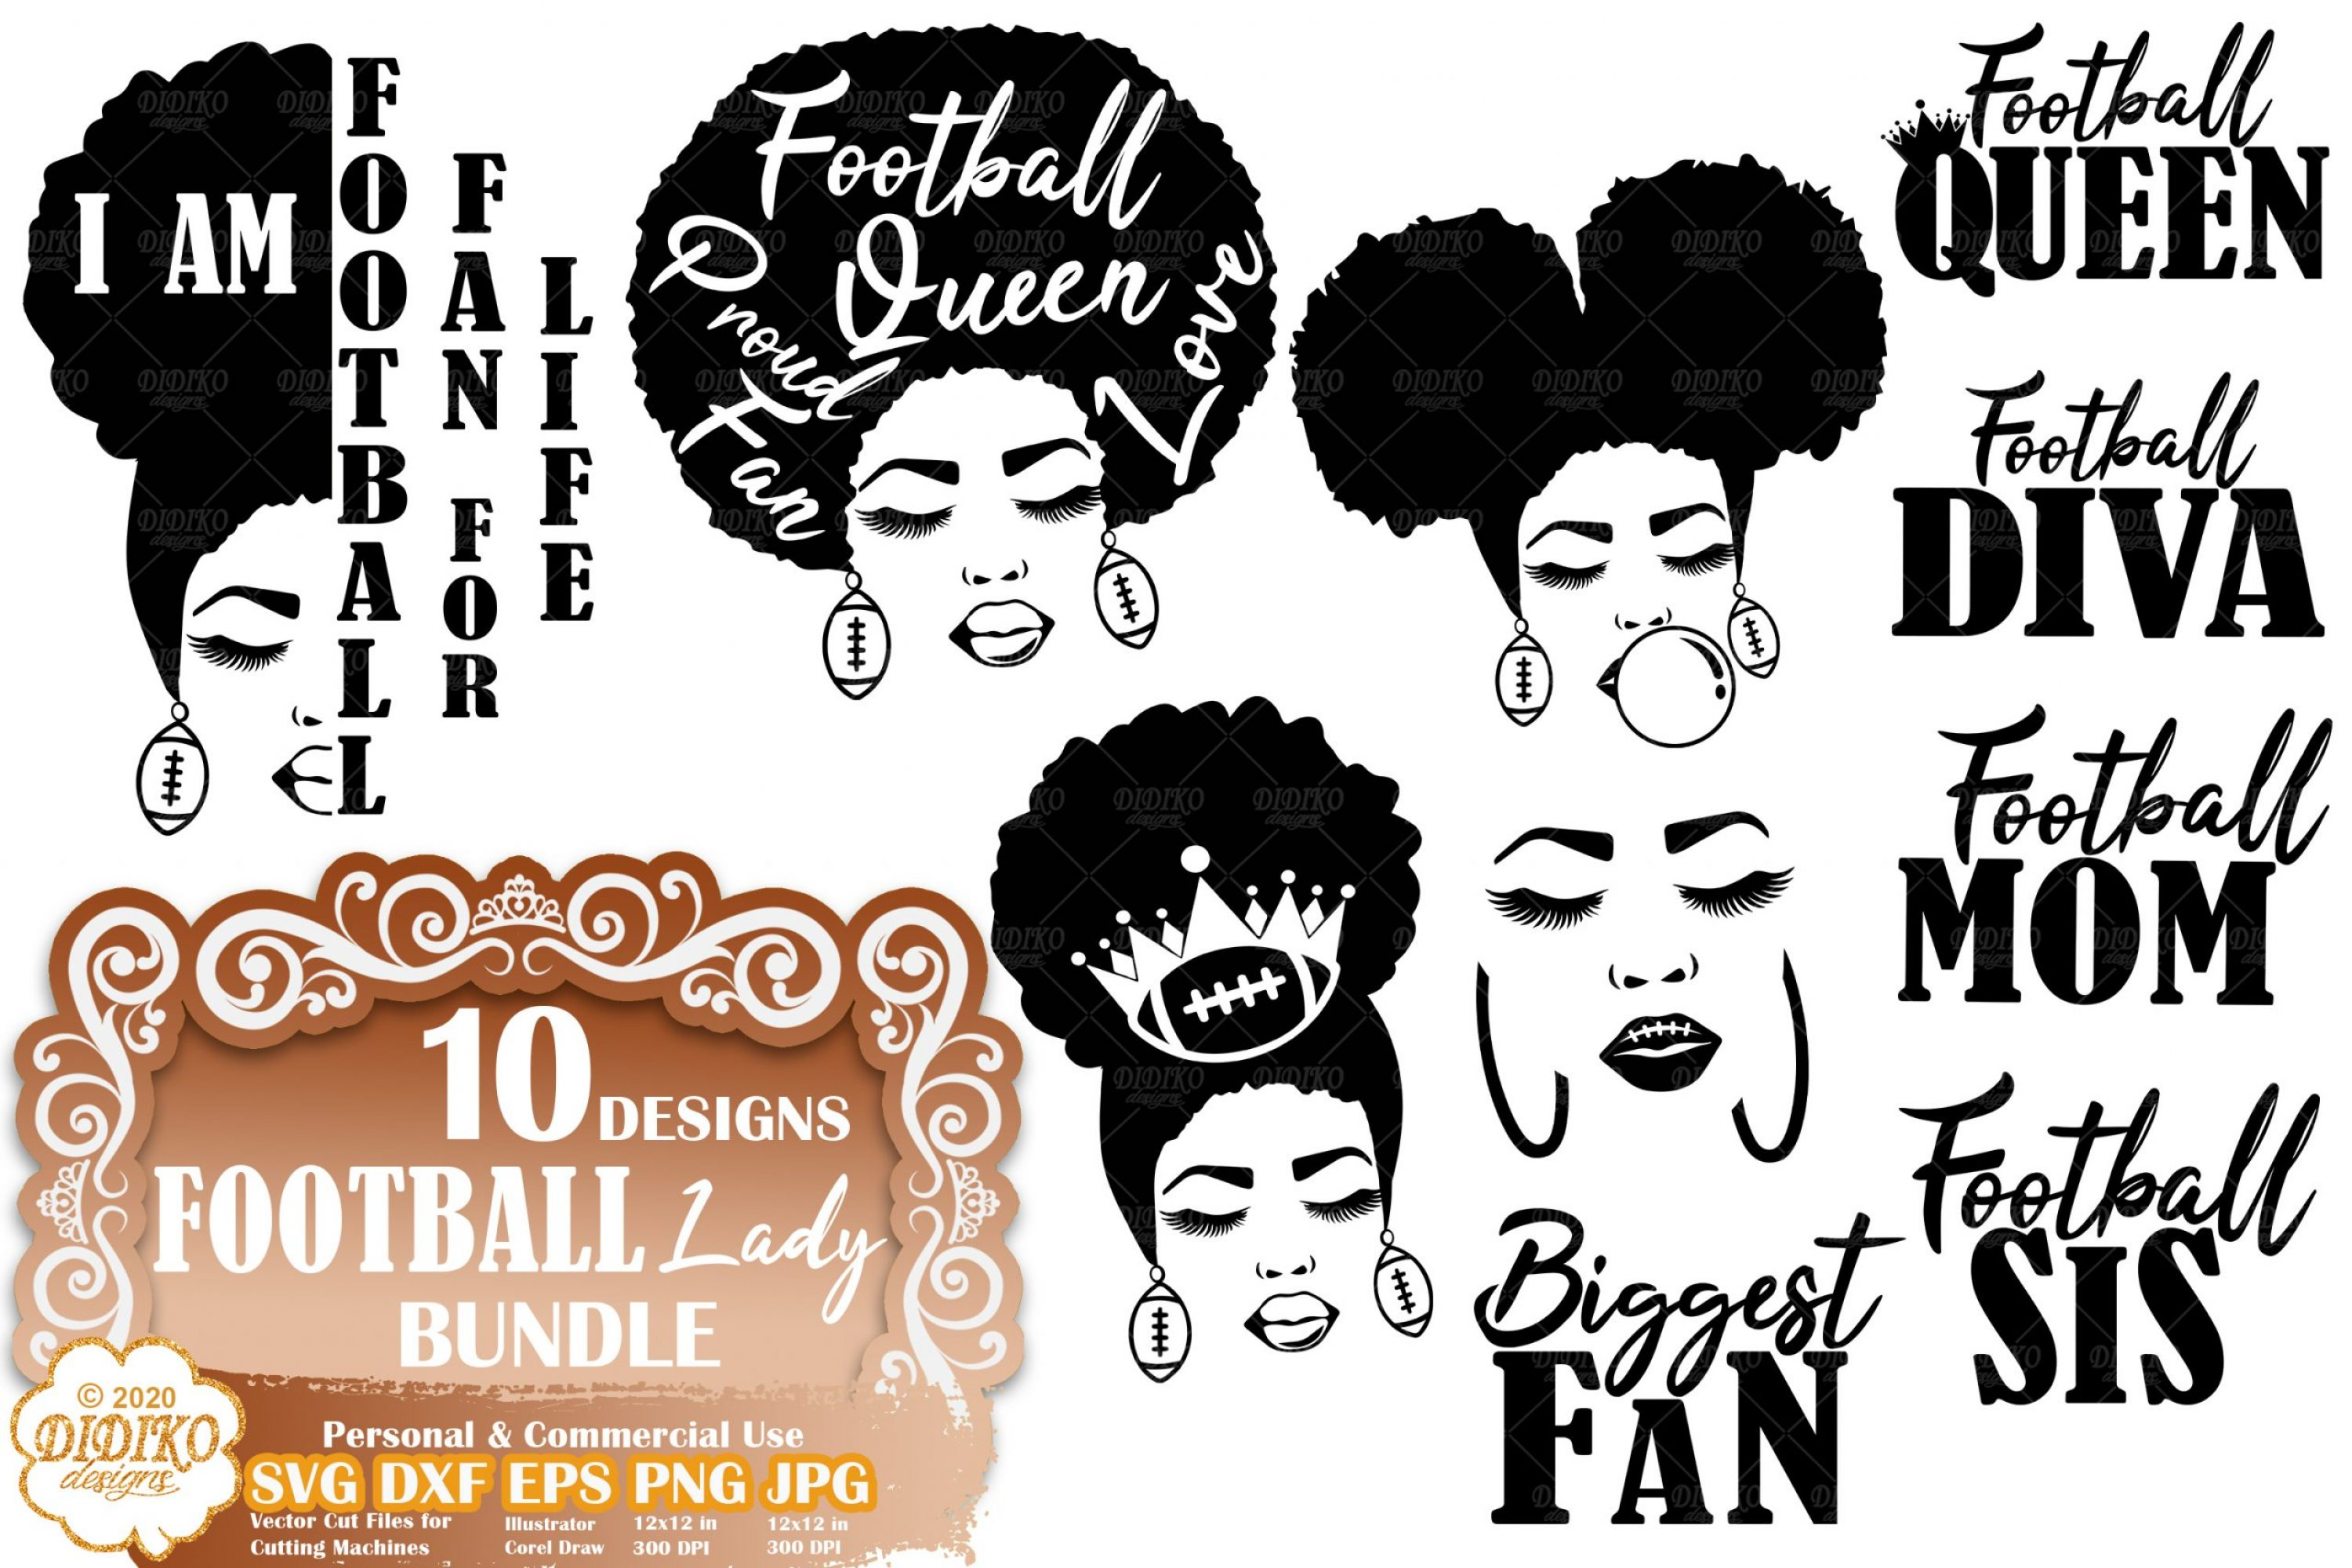 Black Woman SVG Bundle #1 | Football SVG Bundle File